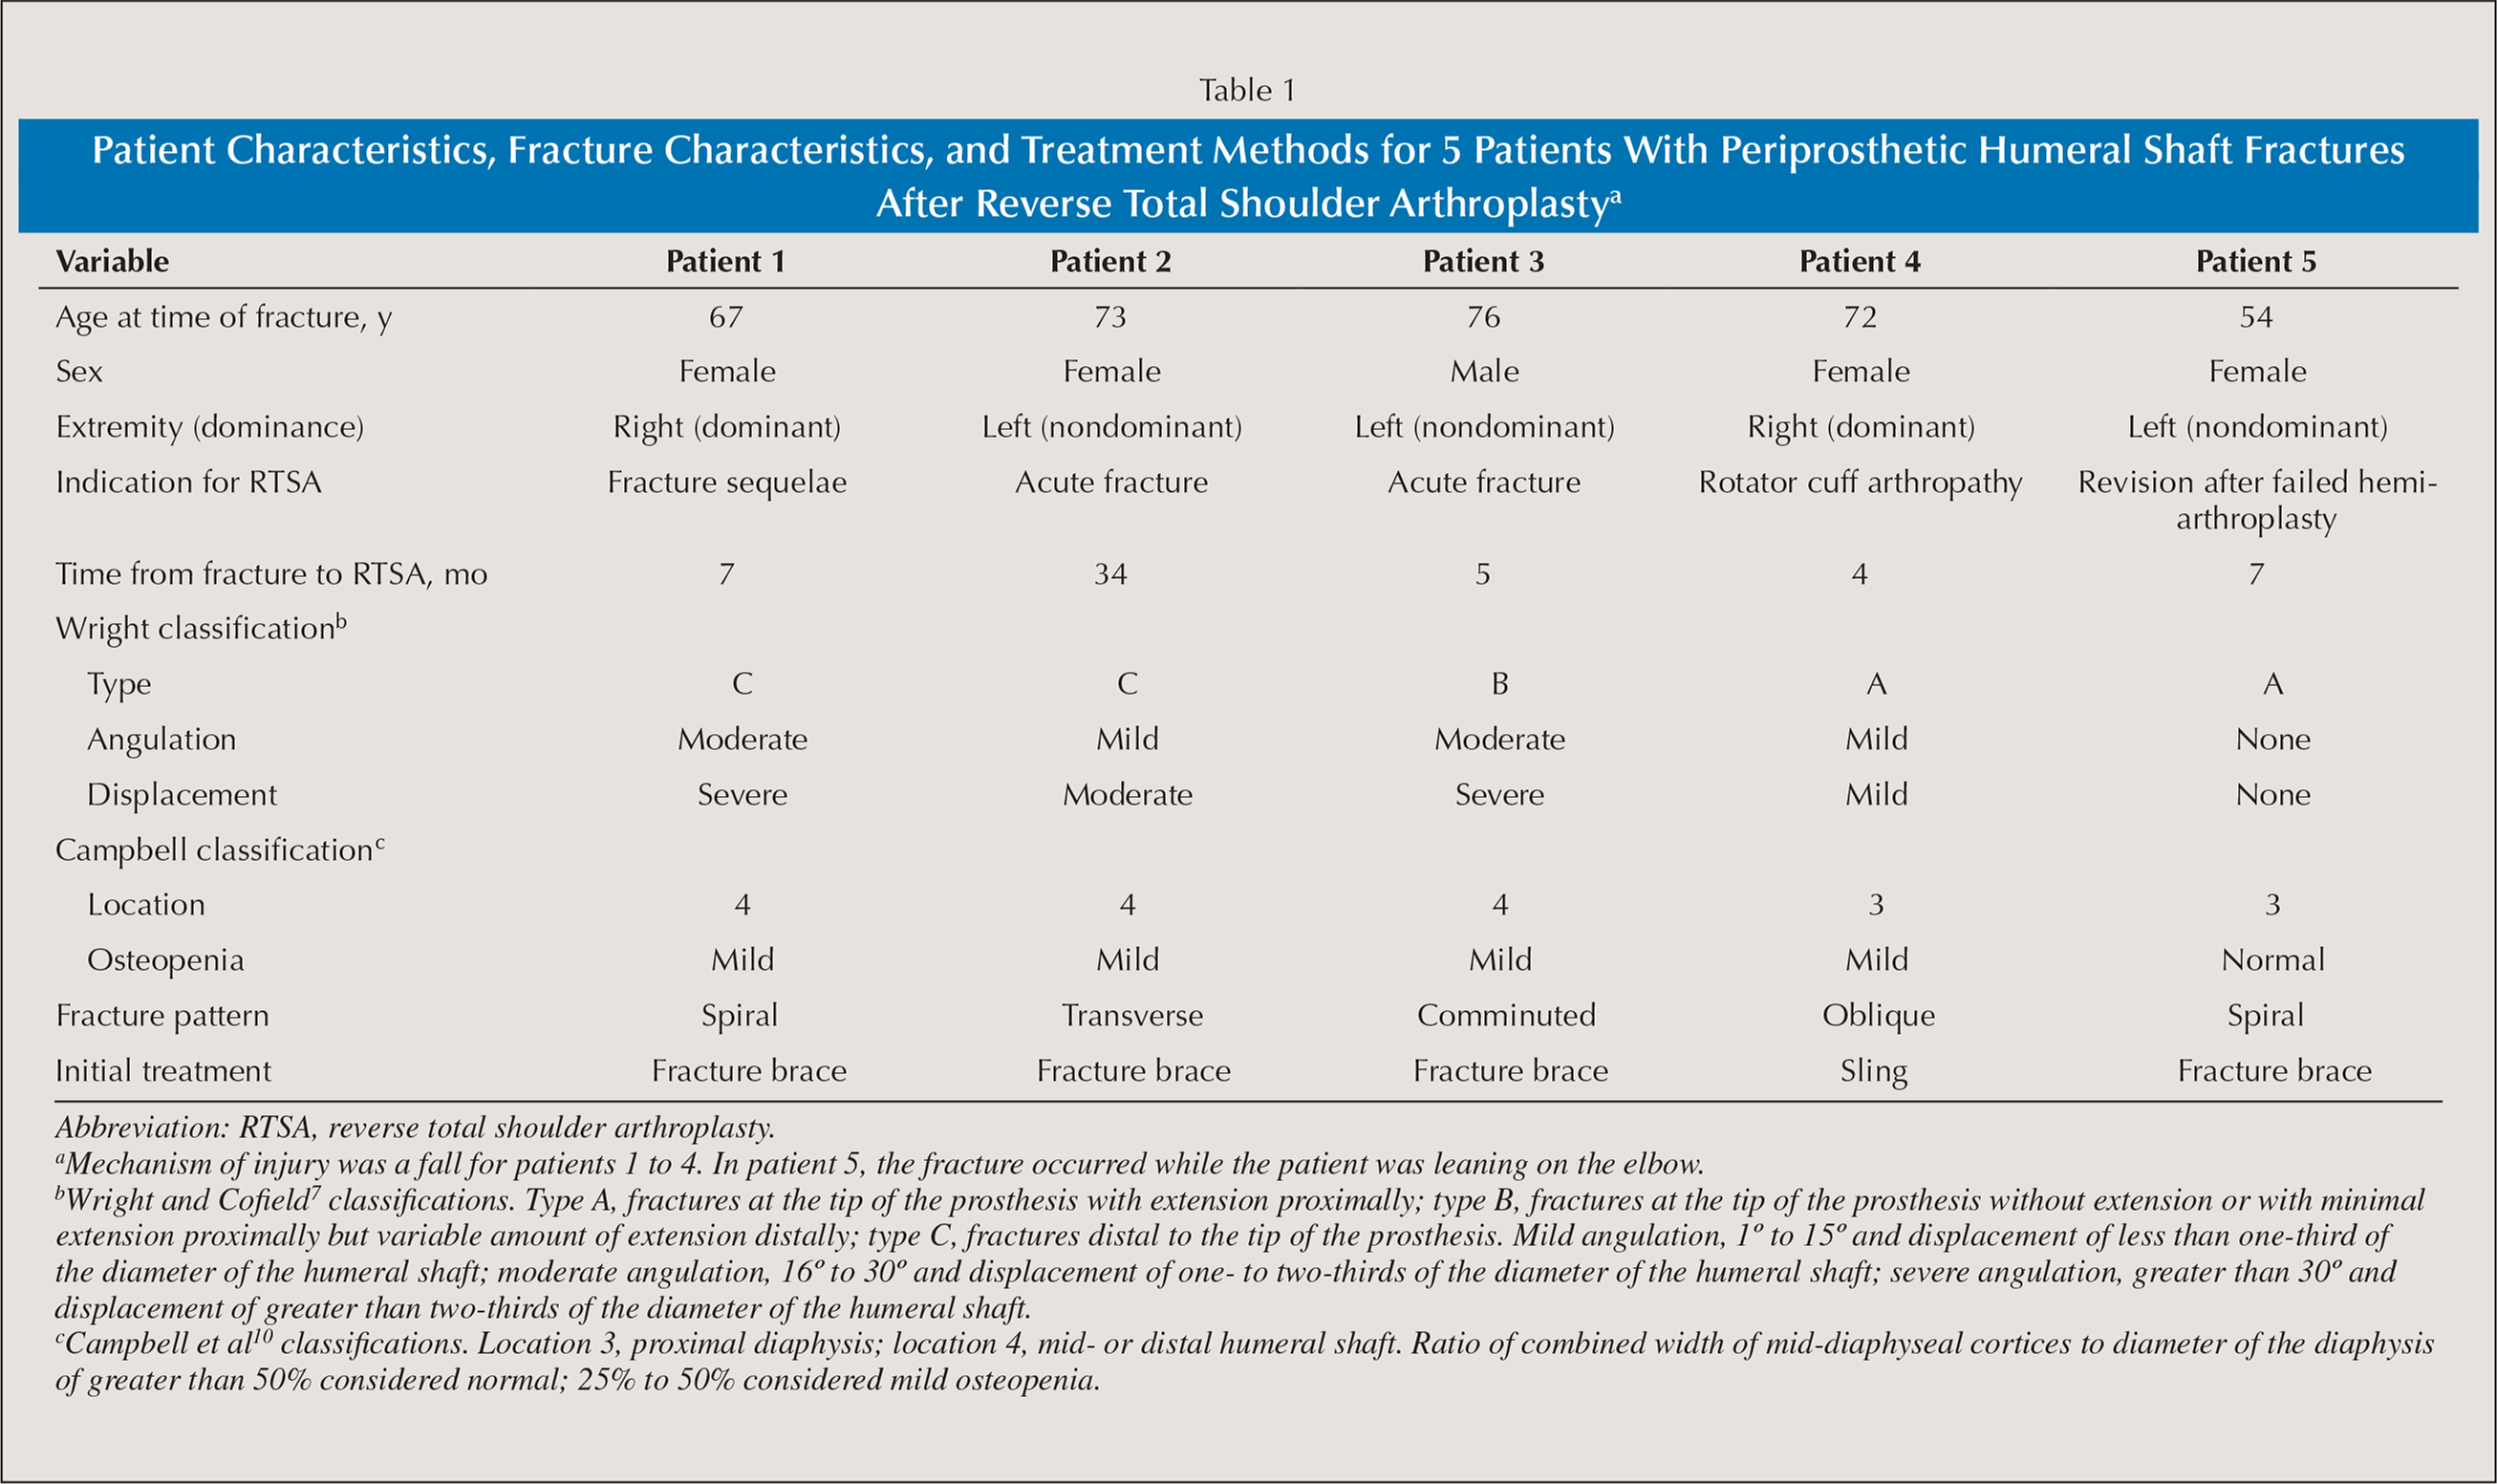 Patient Characteristics, Fracture Characteristics, and Treatment Methods for 5 Patients With Periprosthetic Humeral Shaft Fractures After Reverse Total Shoulder Arthroplastya